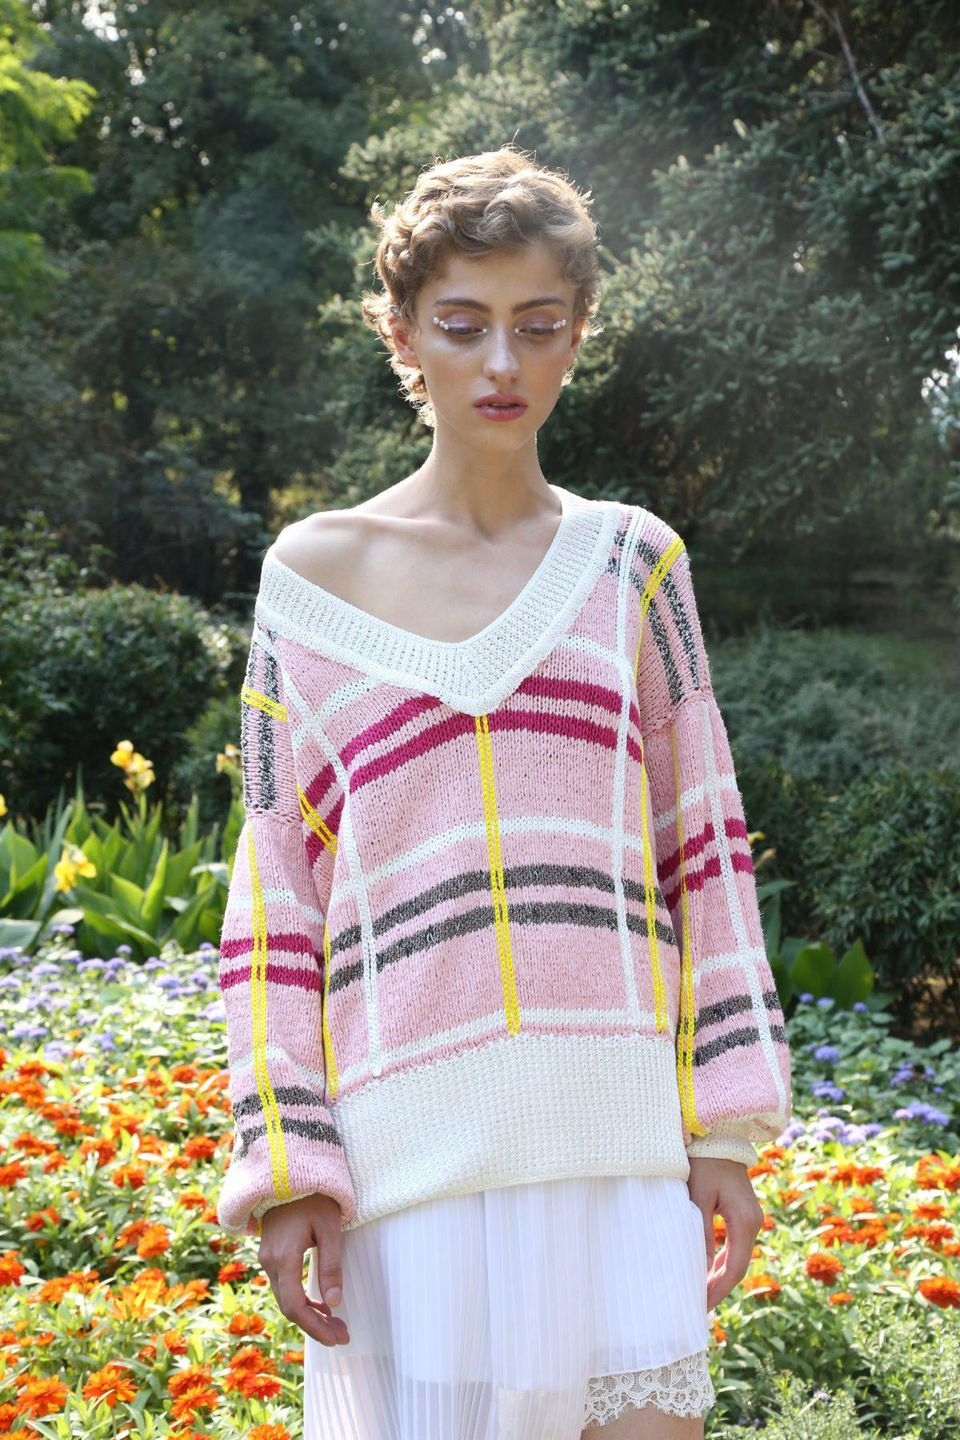 STYLISH PIECES FOR SWEATER WEATHER FROM LALO